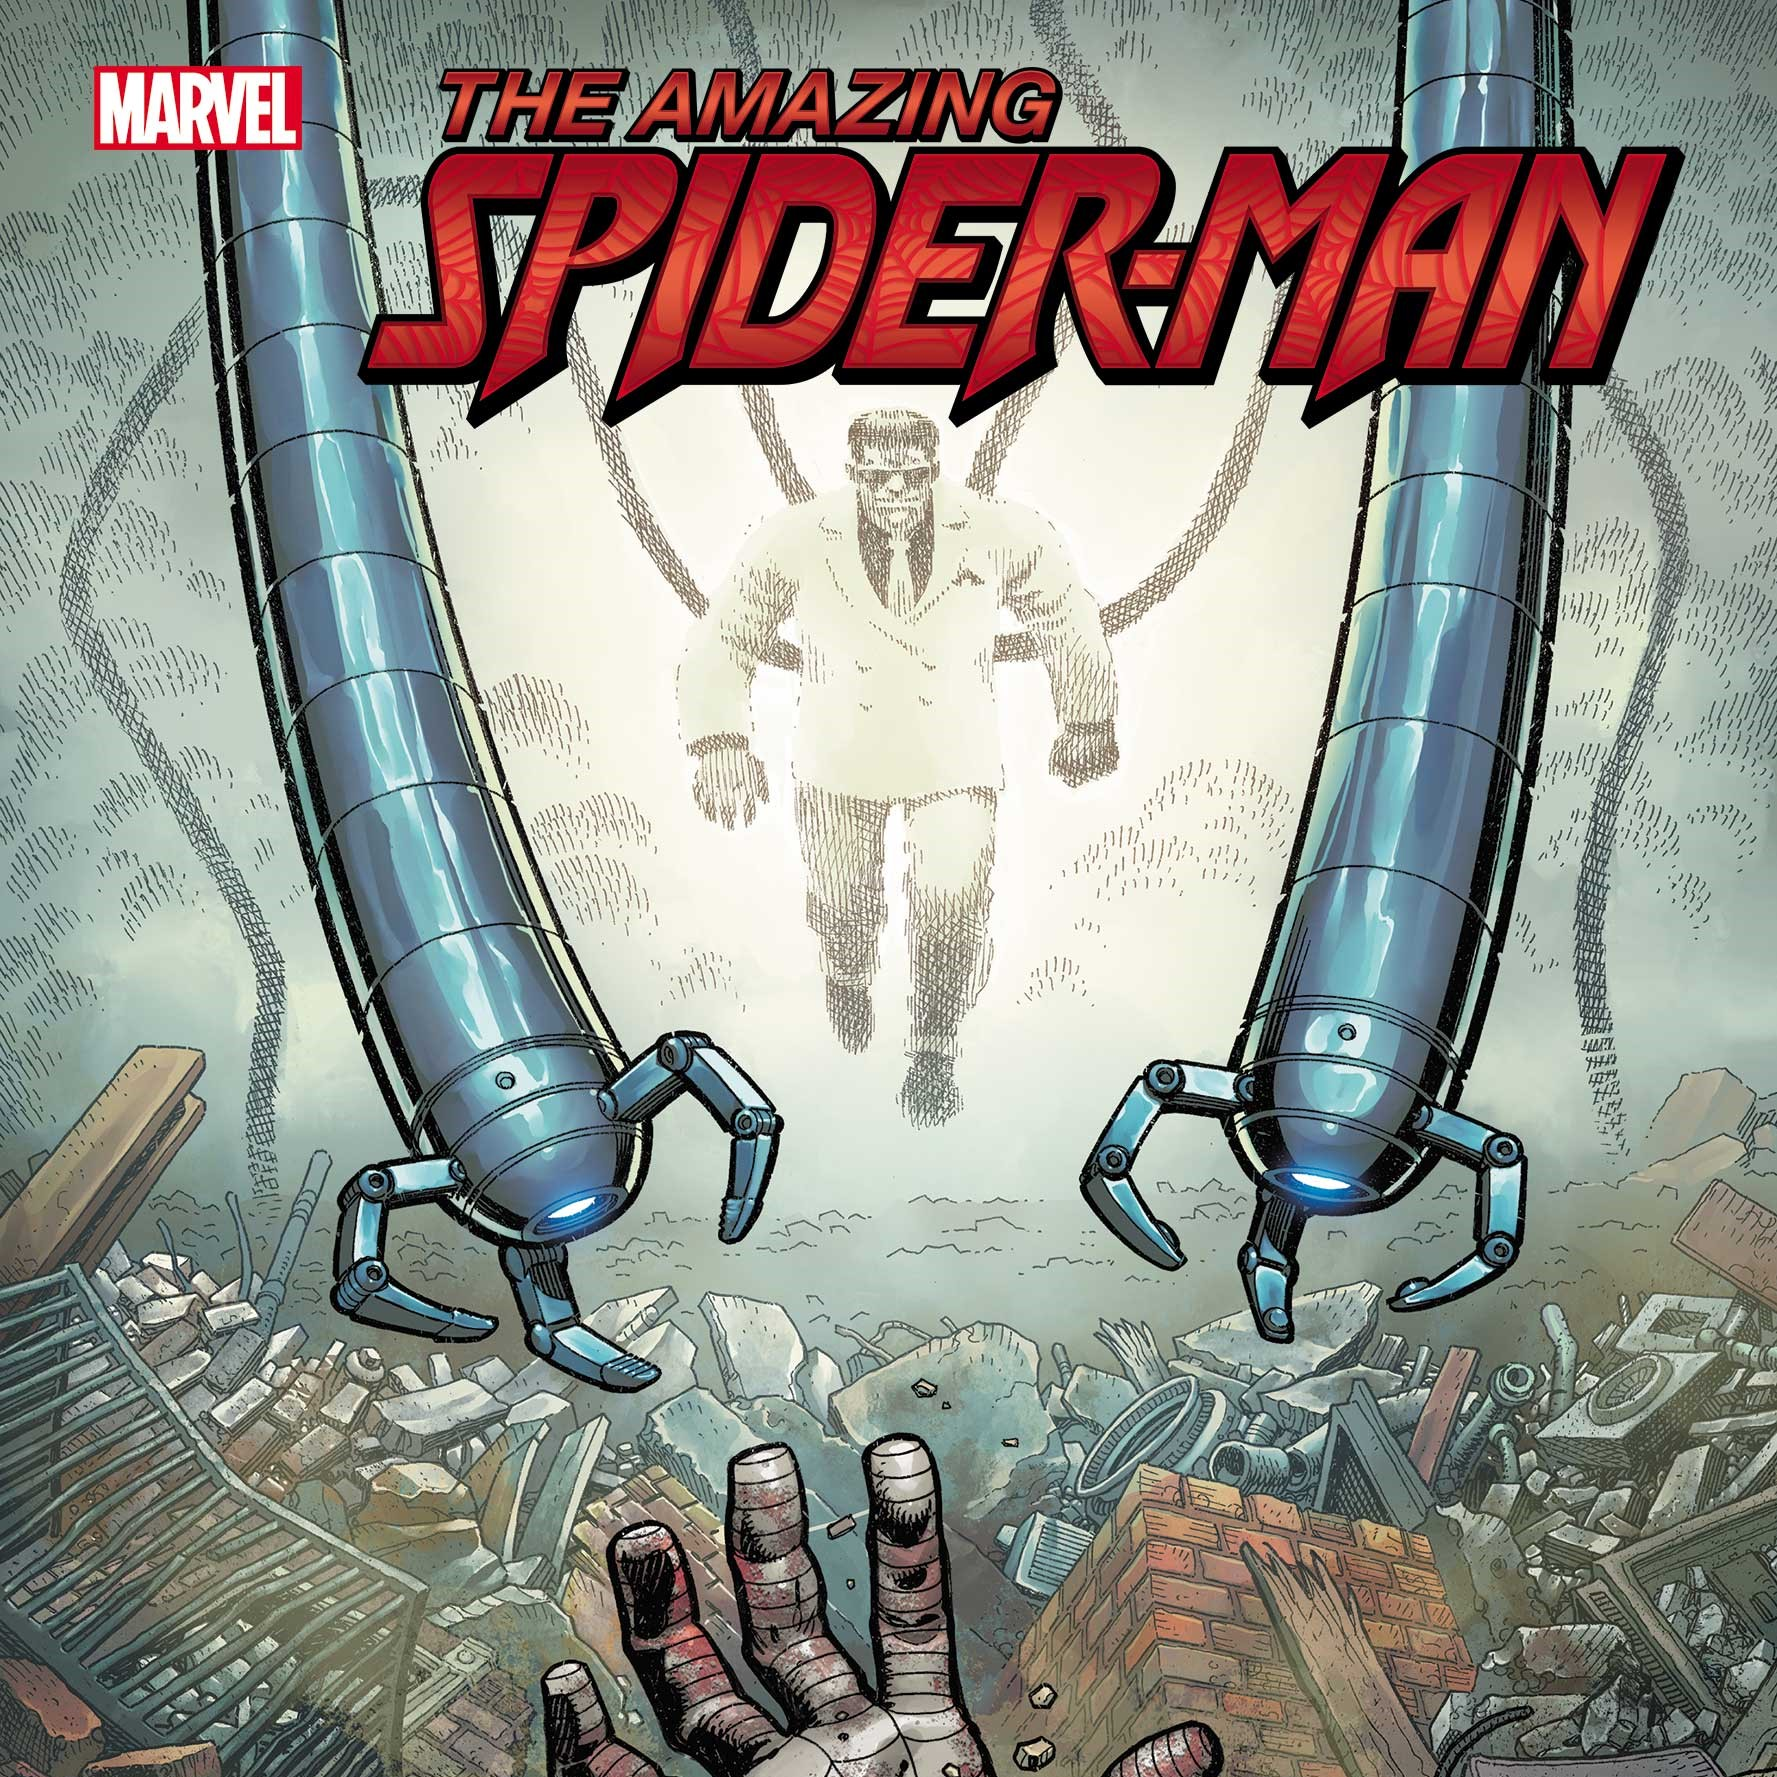 Amazing Spider-Man 85 Cover via Arthur Adams for Marvel Entertainment for use by 360 Magazine